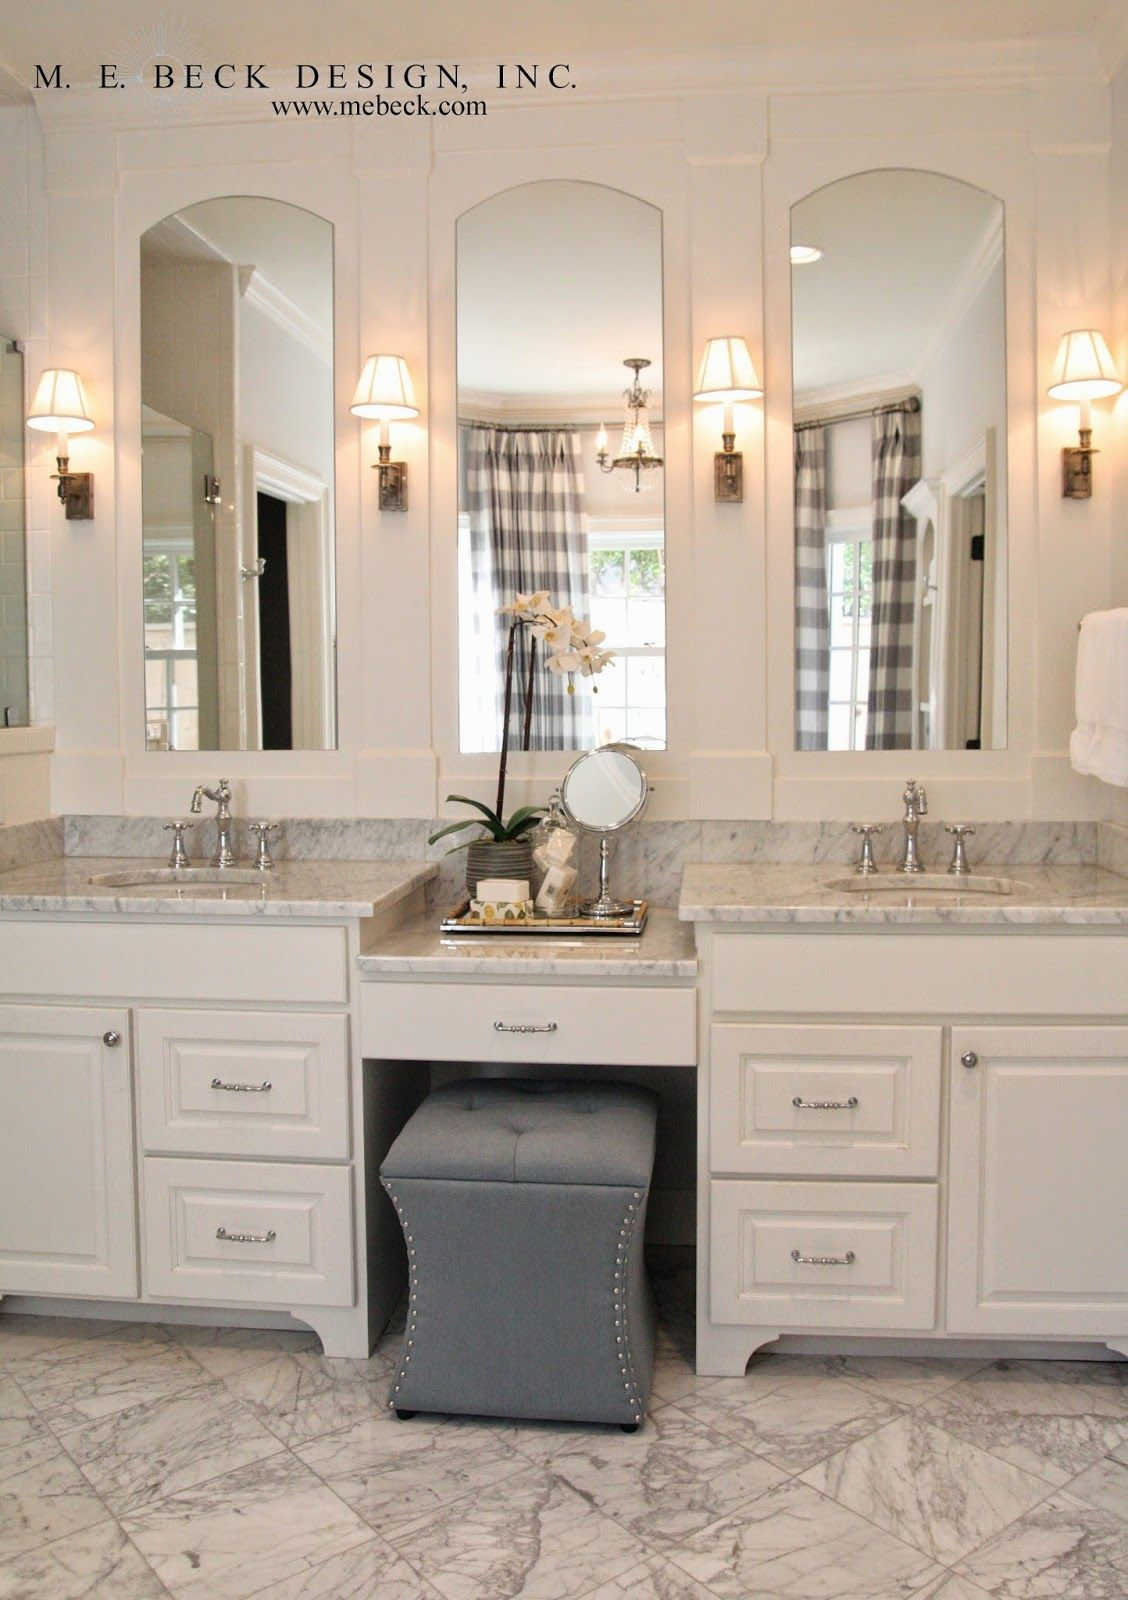 Live Beautifully Bathroom Remodel Master Bathrooms Remodel Small Master Bathroom